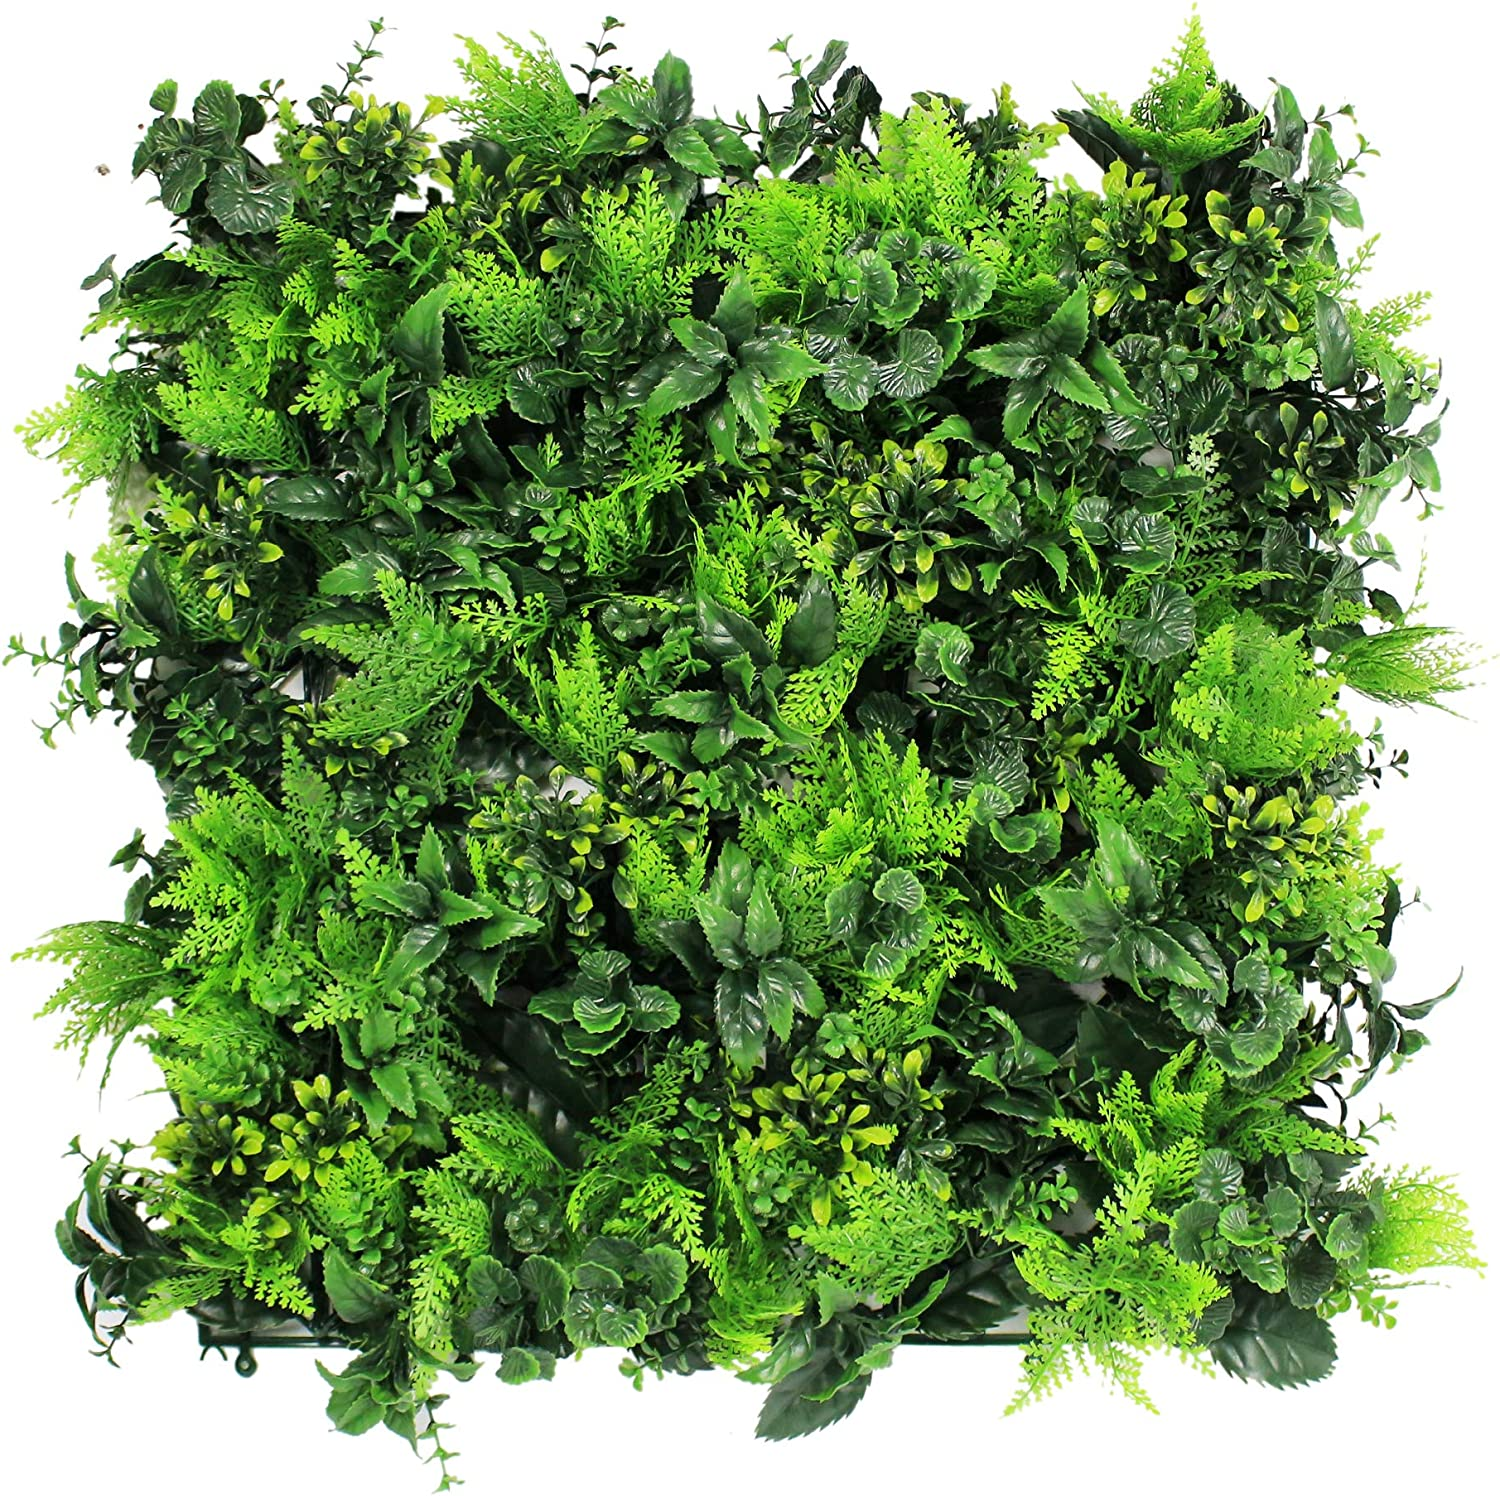 """ULAND Artificial Topiary Hedges Panels, Plastic Faux Shrubs Fence Mat, Greenery Wall Backdrop Decor, Garden Privacy Screen Fence, Pack of 12pcs 20""""x20"""""""